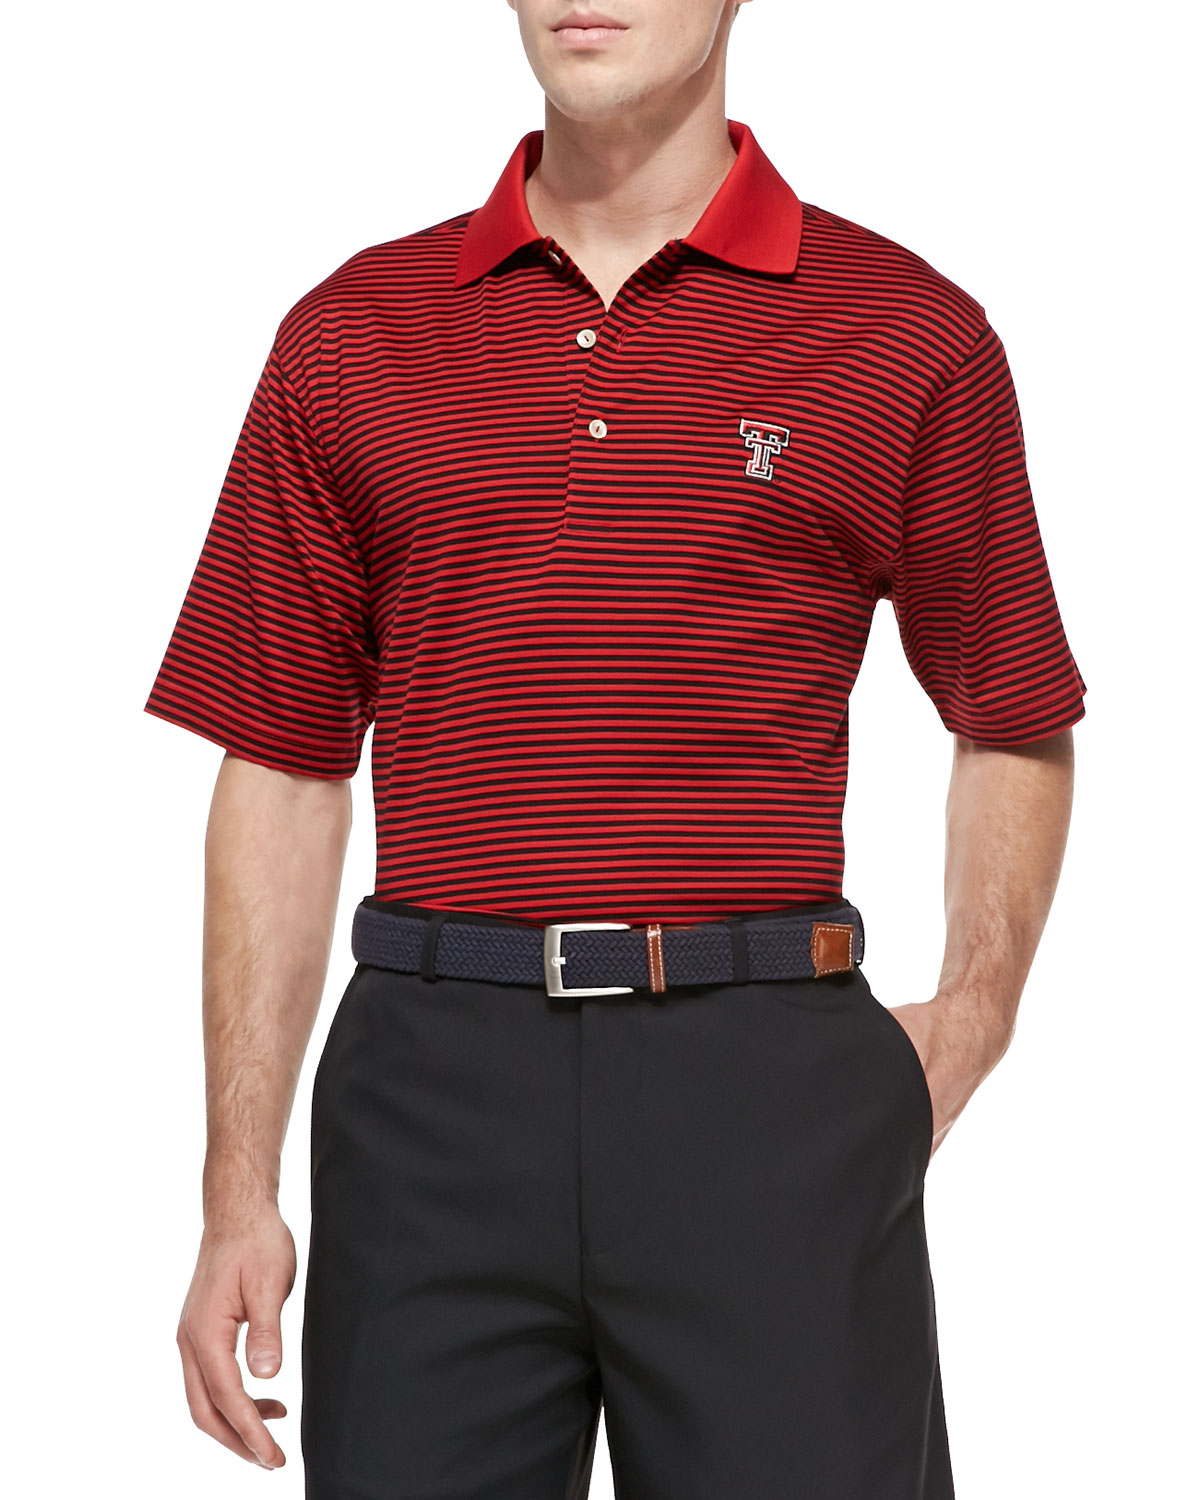 Peter millar texas tech gameday college shirt polo in red for Peter millar polo shirts